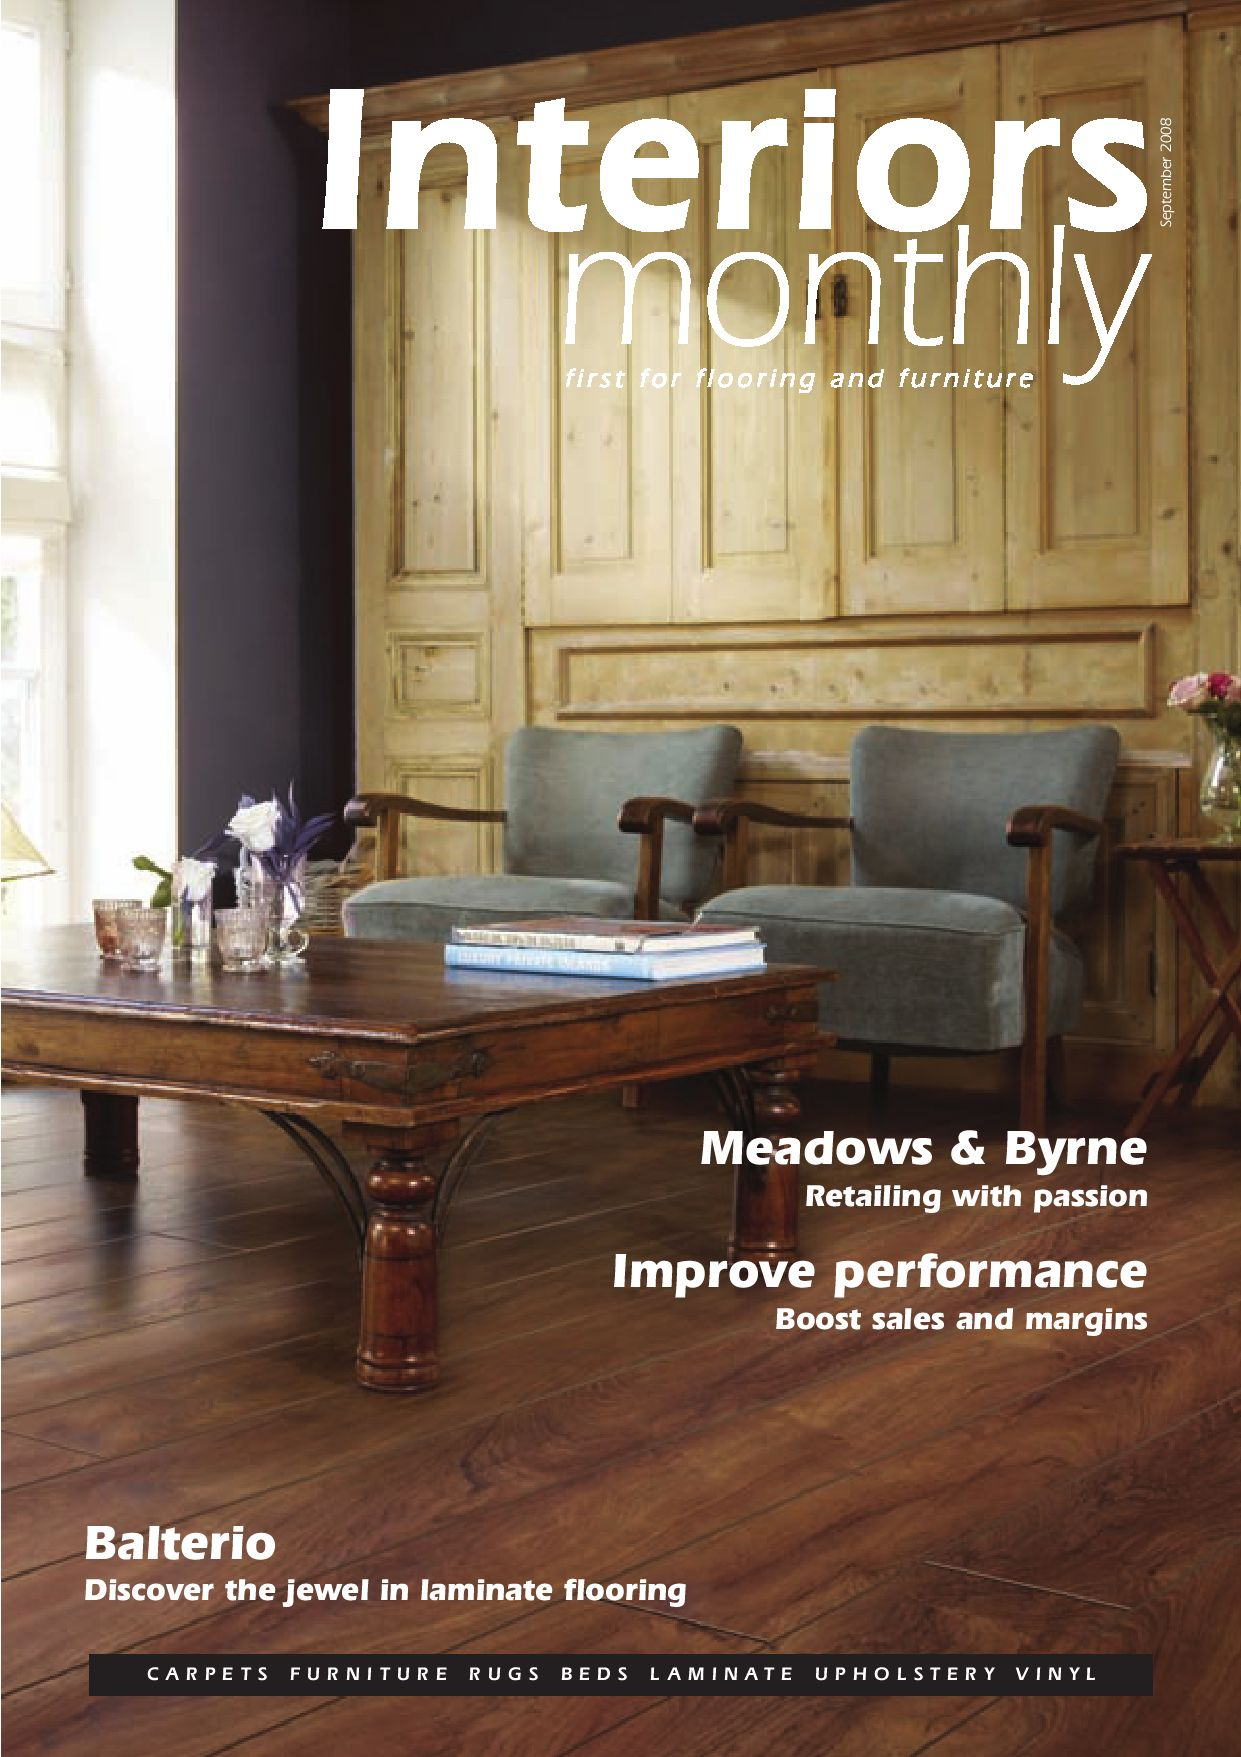 Interiors monthly september 2008 by interiors monthly issuu for Balterio flooring stockists